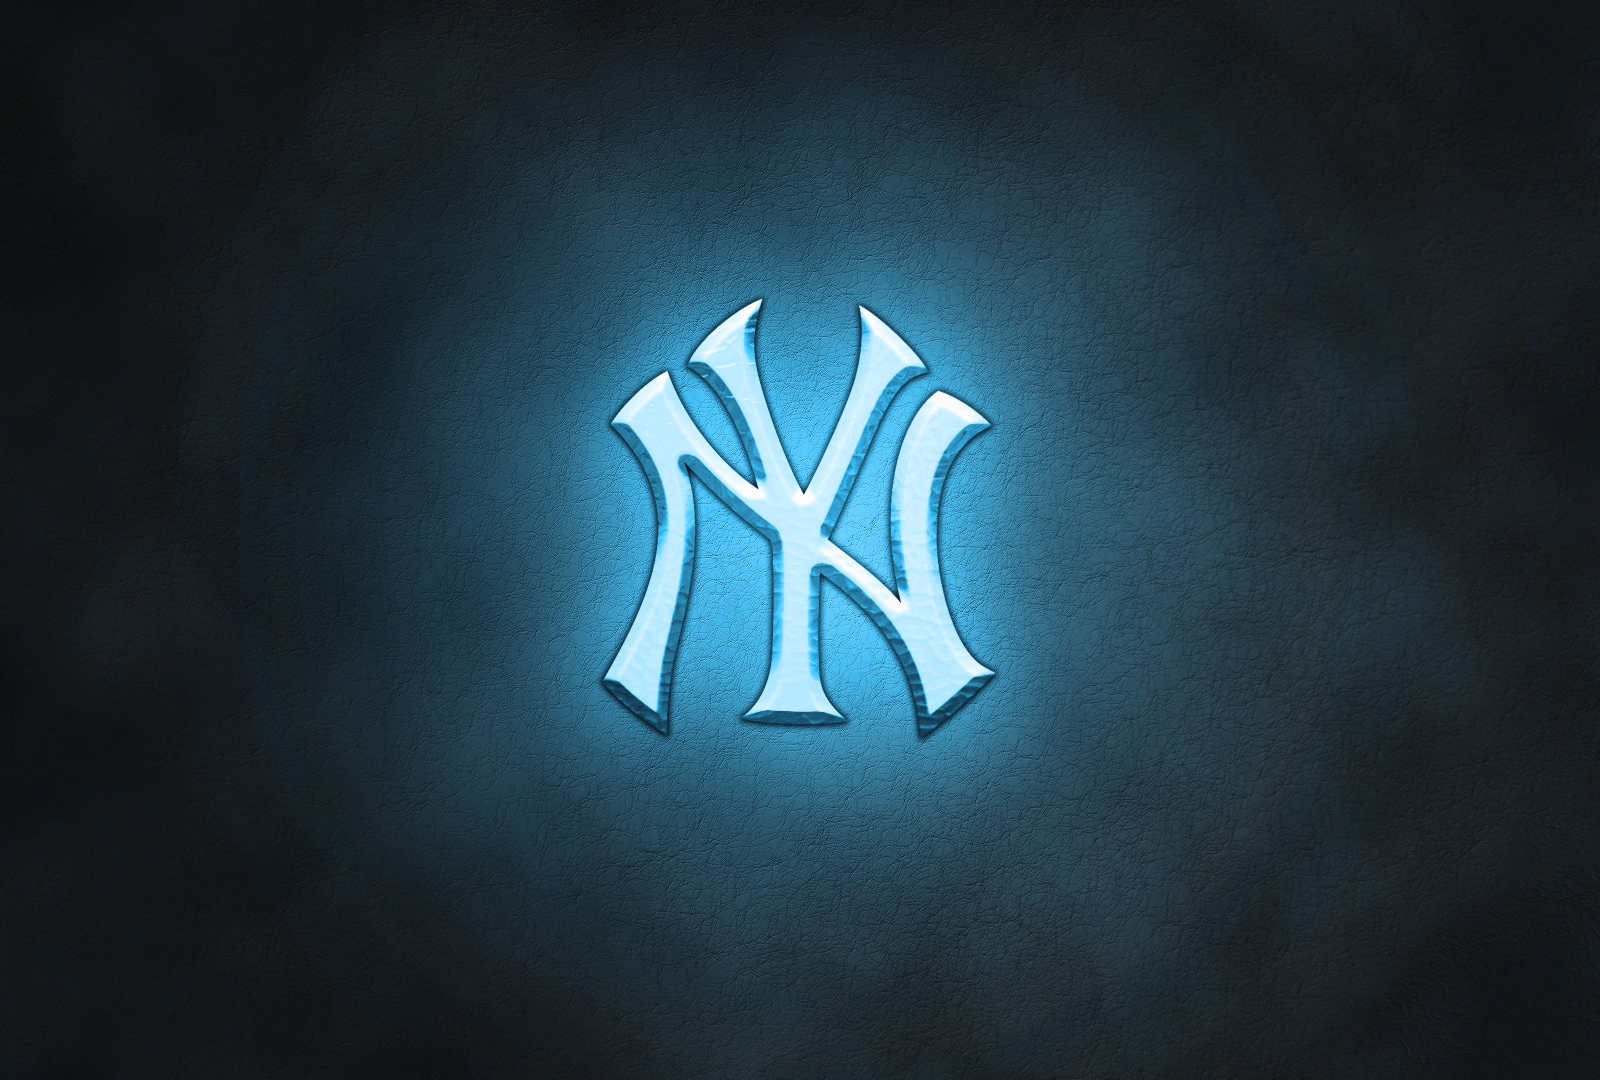 New York Yankees HD Desktop Wallpaper Wallpapers 1600x1080